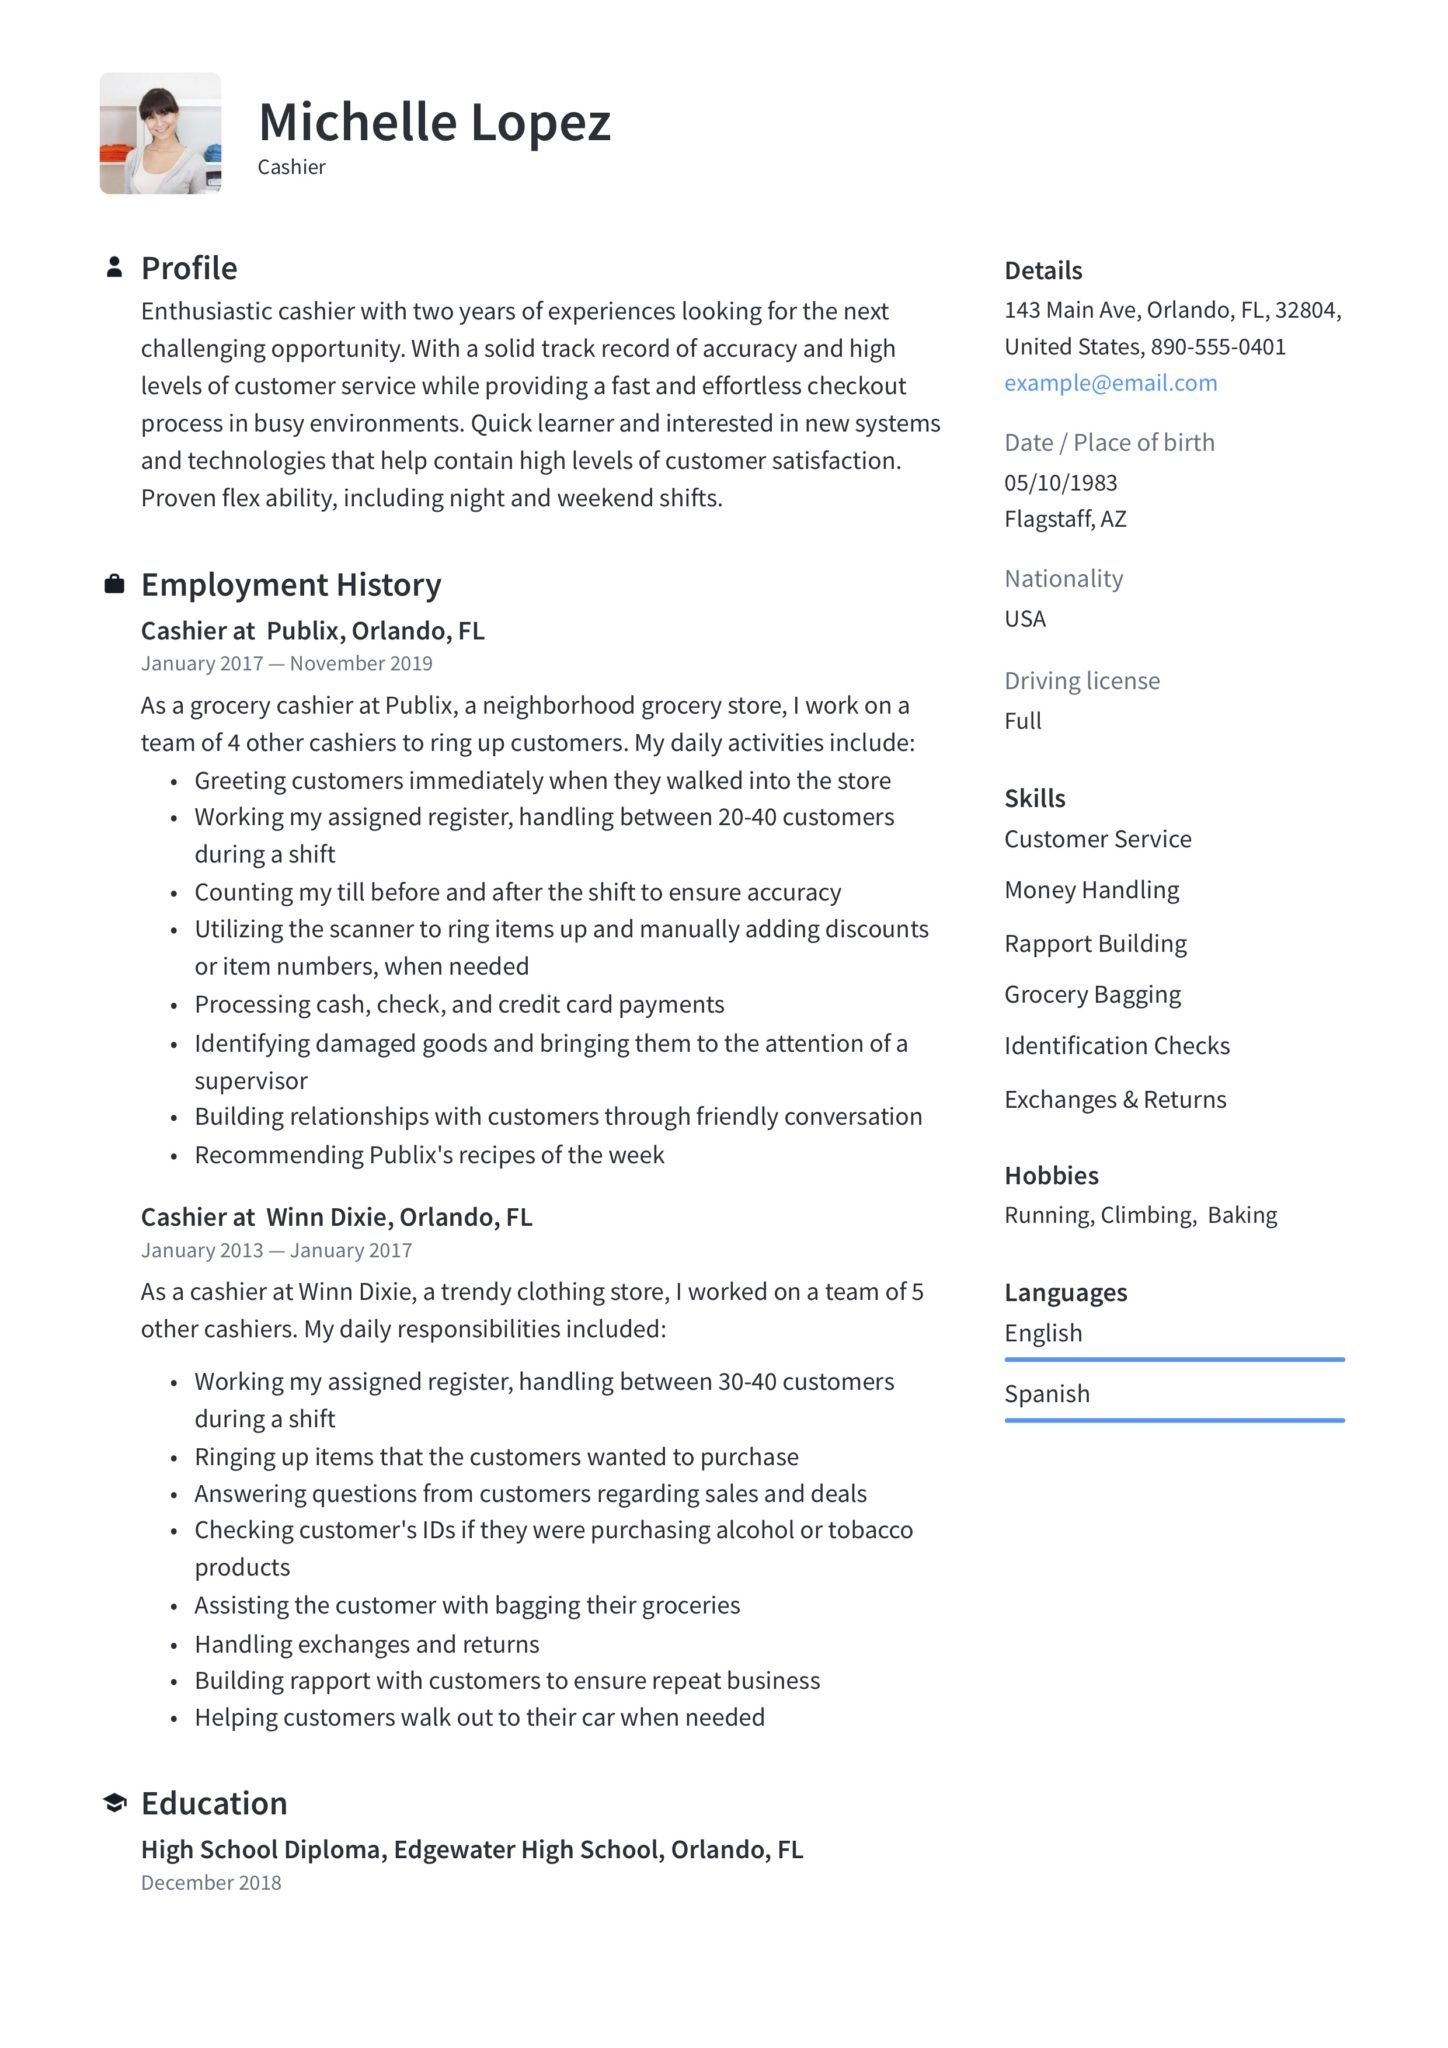 Cashier Resume Writing Guide 12 Samples Pdf Word 2020